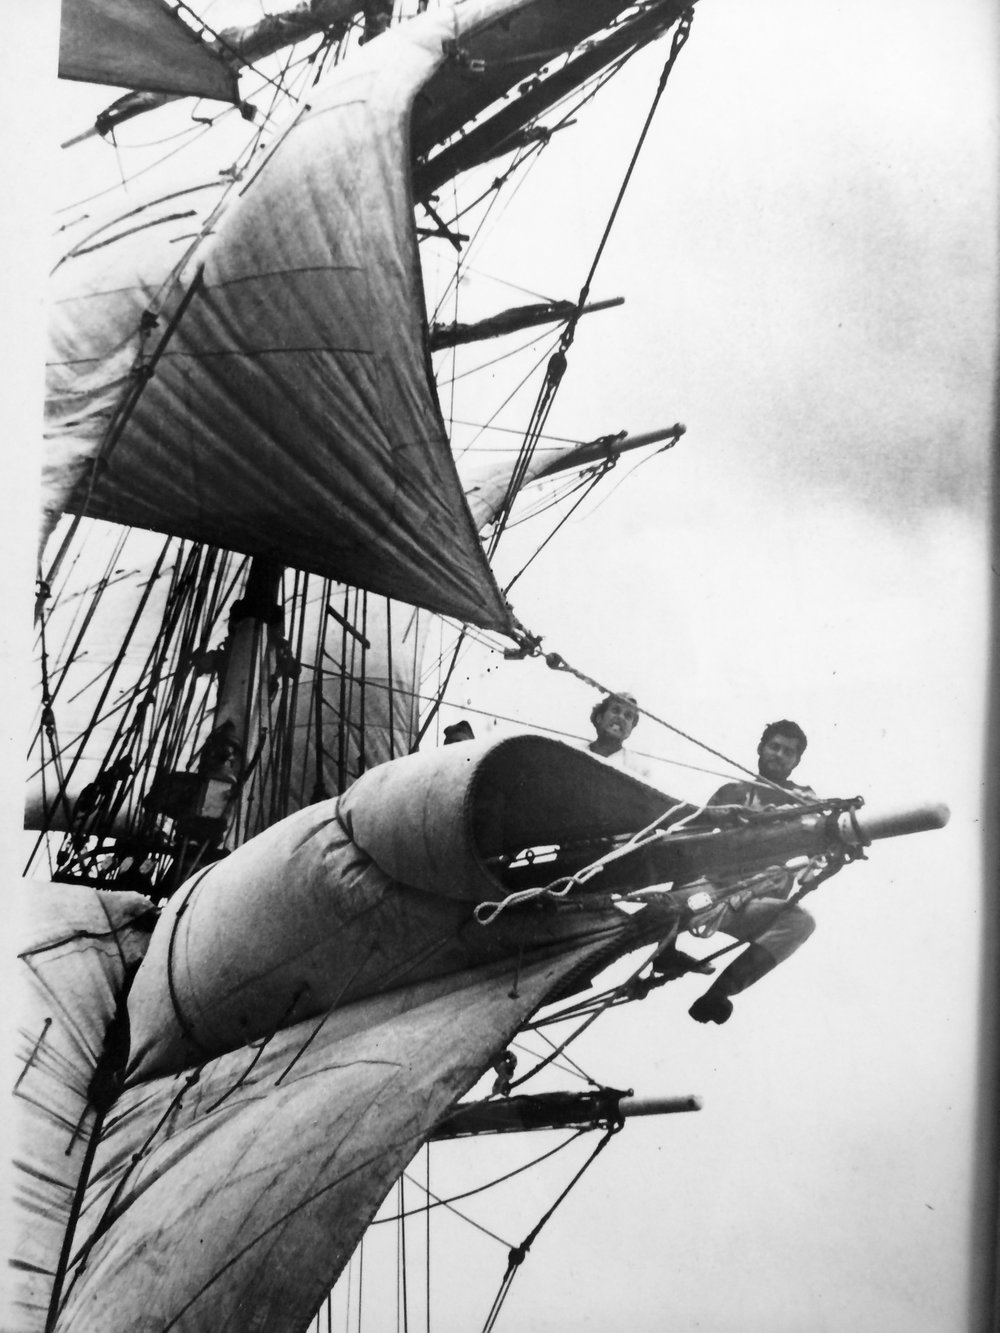 """Drake Thomas (1942 -) at the end of the yard on Endeavour II.Drake has sailed throughout the Pacific on barkentines and schooners, and also served on Coast Guard cutters. From Panama to Australia, from the Galapagos to the Bering Sea, he has spent decades navigating the high seas. He served as Master of the Brigantine  Rendezvous , was responsible for the restoration of the Baltic schooner """" Carthaginian """" in Lahaina, Maui, and also built thesquare-rigged sailing packet  """"Hawaiian Chieftain """" (launched in 1988)."""